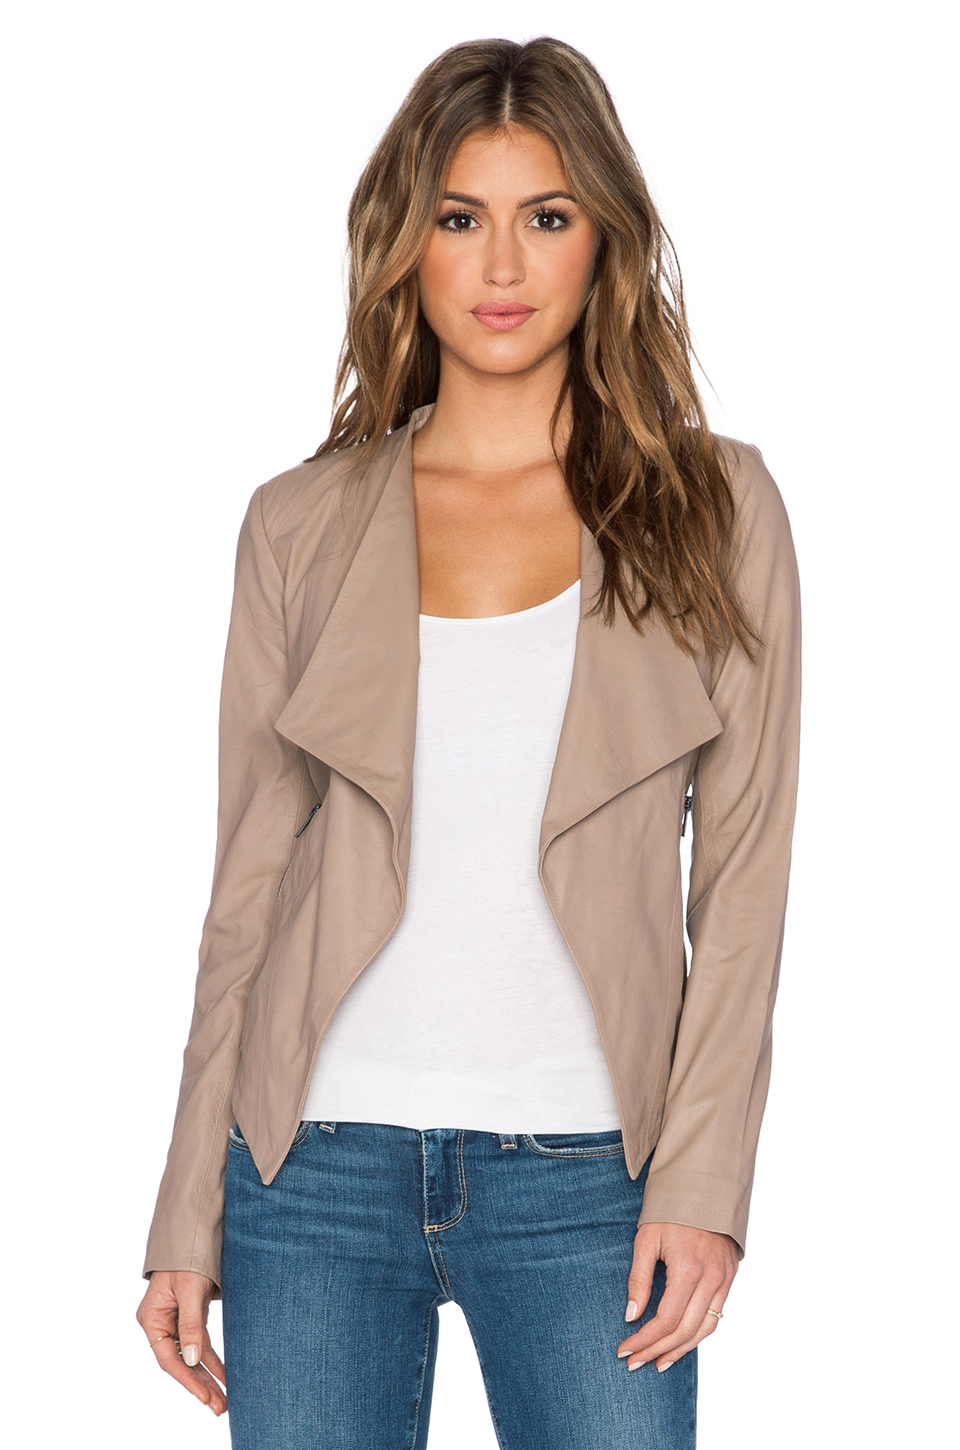 how to clean leather jacket naturally